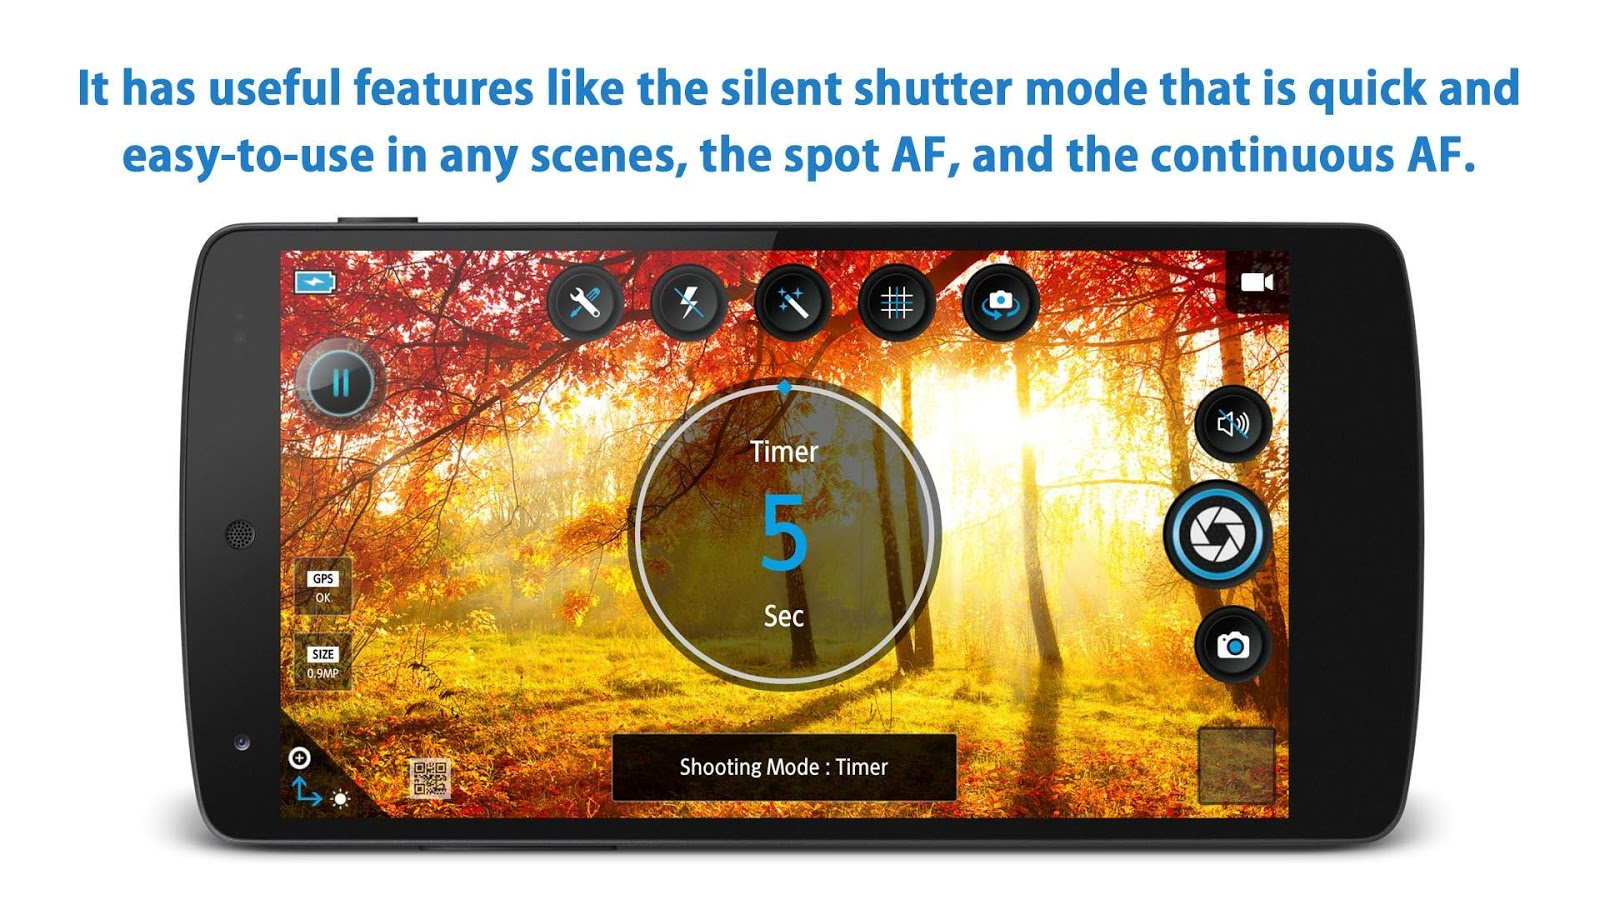 HD Camera Pro - silent shutter Screenshot 1